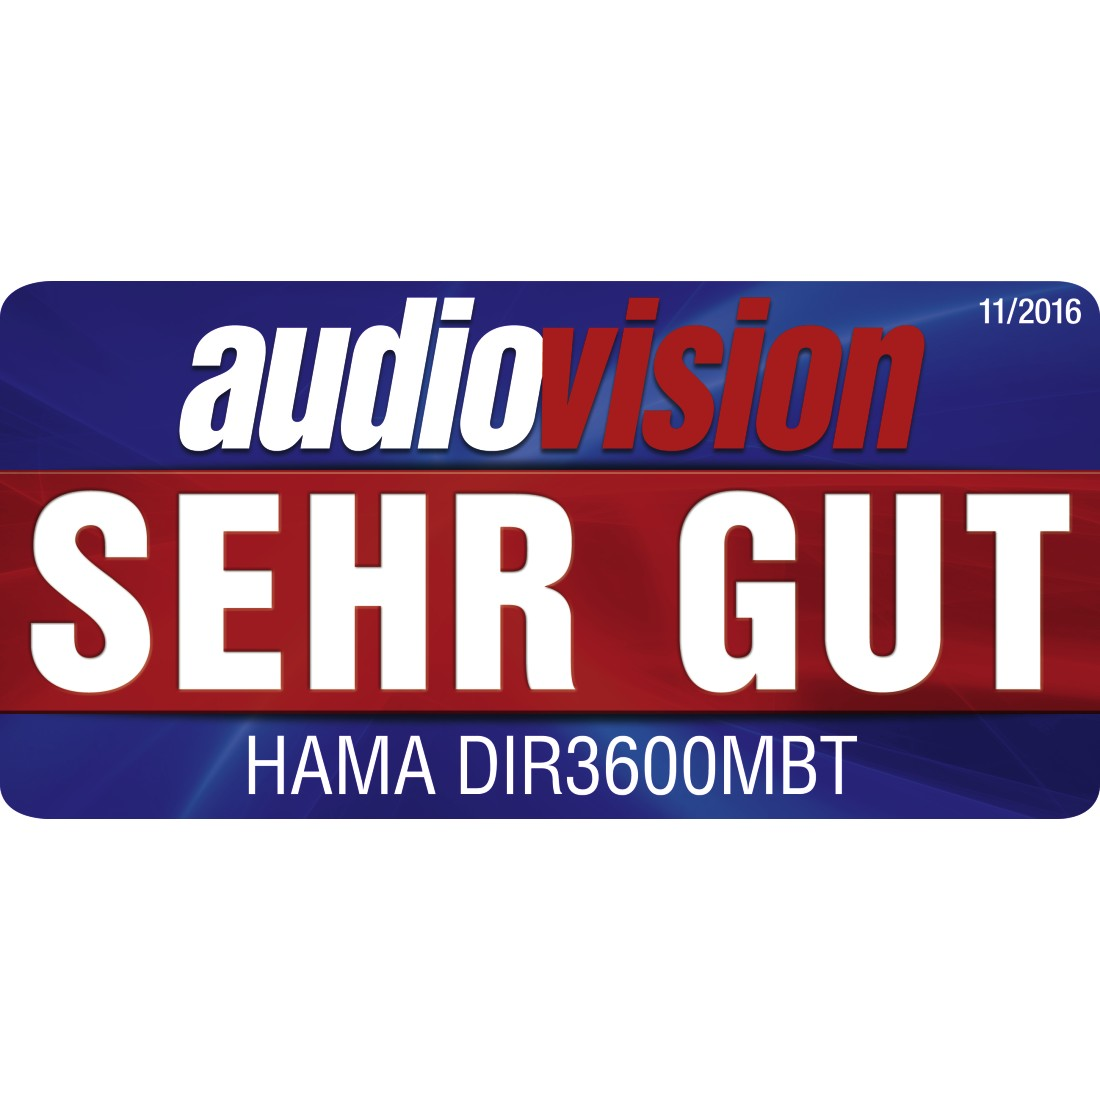 tex Druckfähiges Testurteil - Hama, Digitalradio DIR3600MBT, Internetradio/DAB+/FM/App/Multiroom/Bluetooth